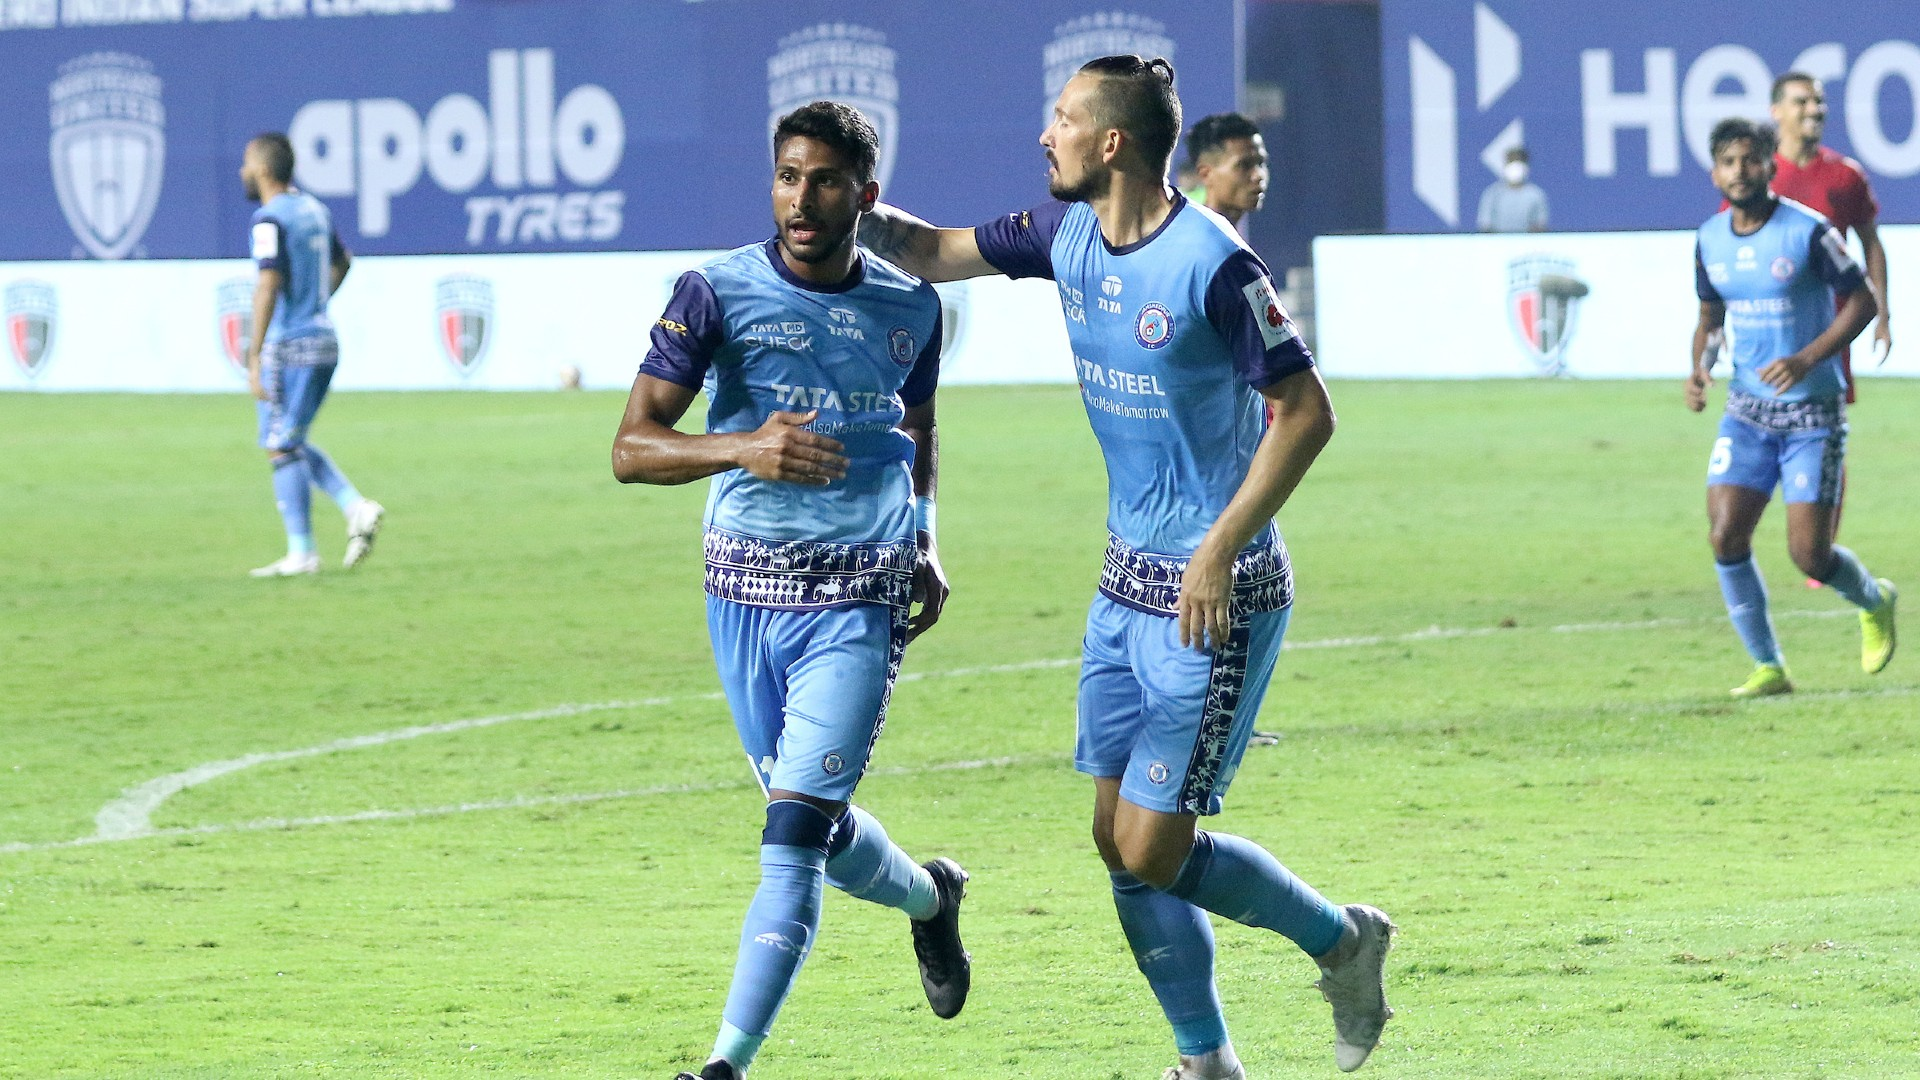 Jamshedpur FC earn a key win over NorthEast United but needs to display more quality!